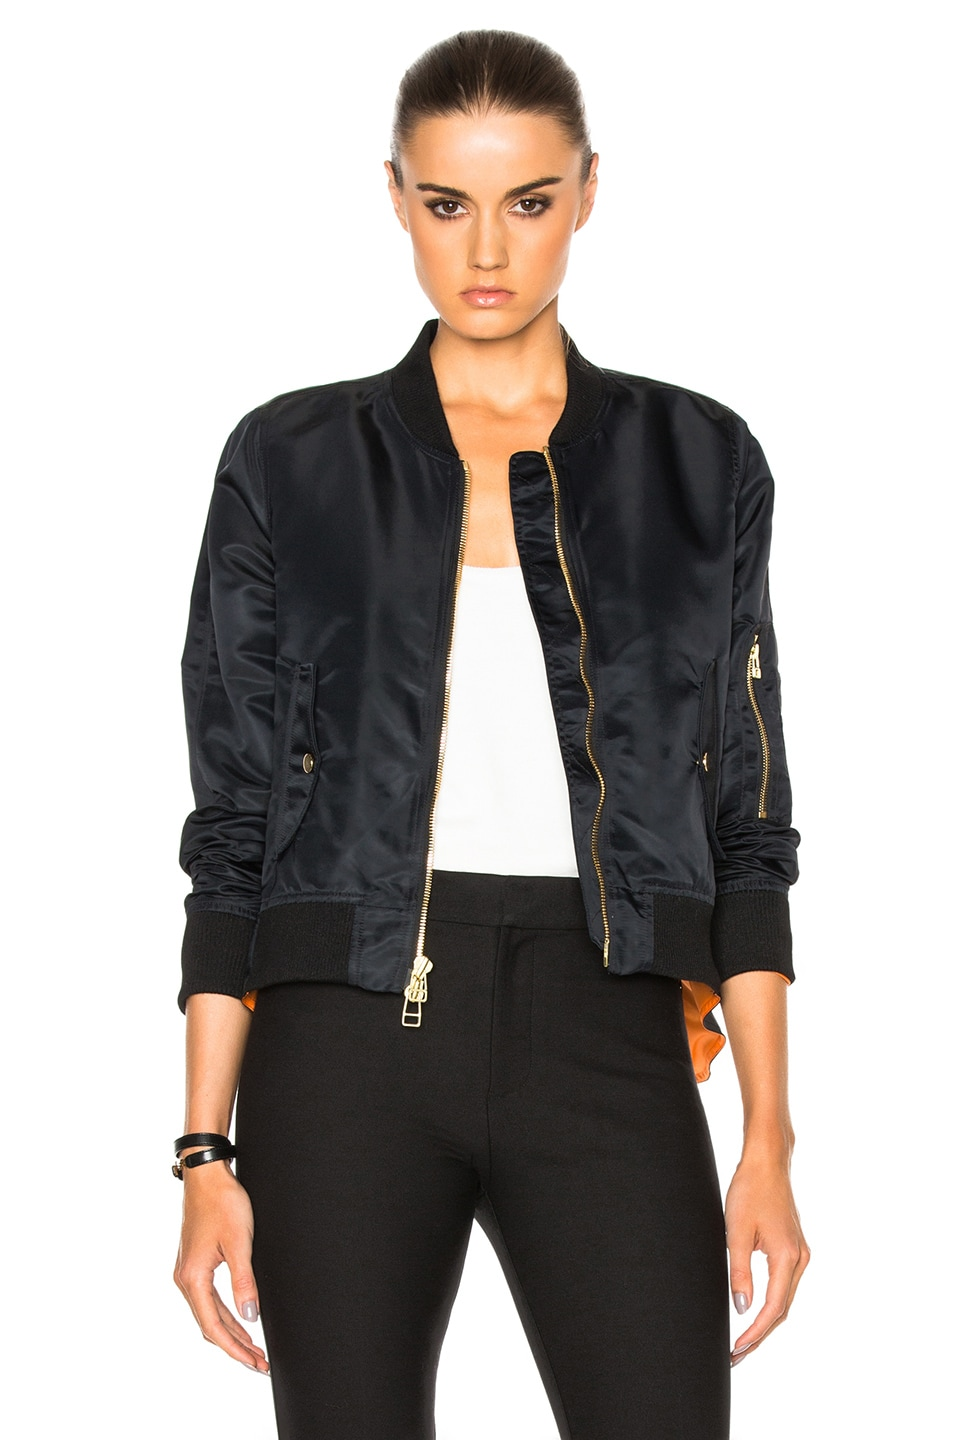 Image 1 of Veronica Beard for FWRD Flight Jacket in Black